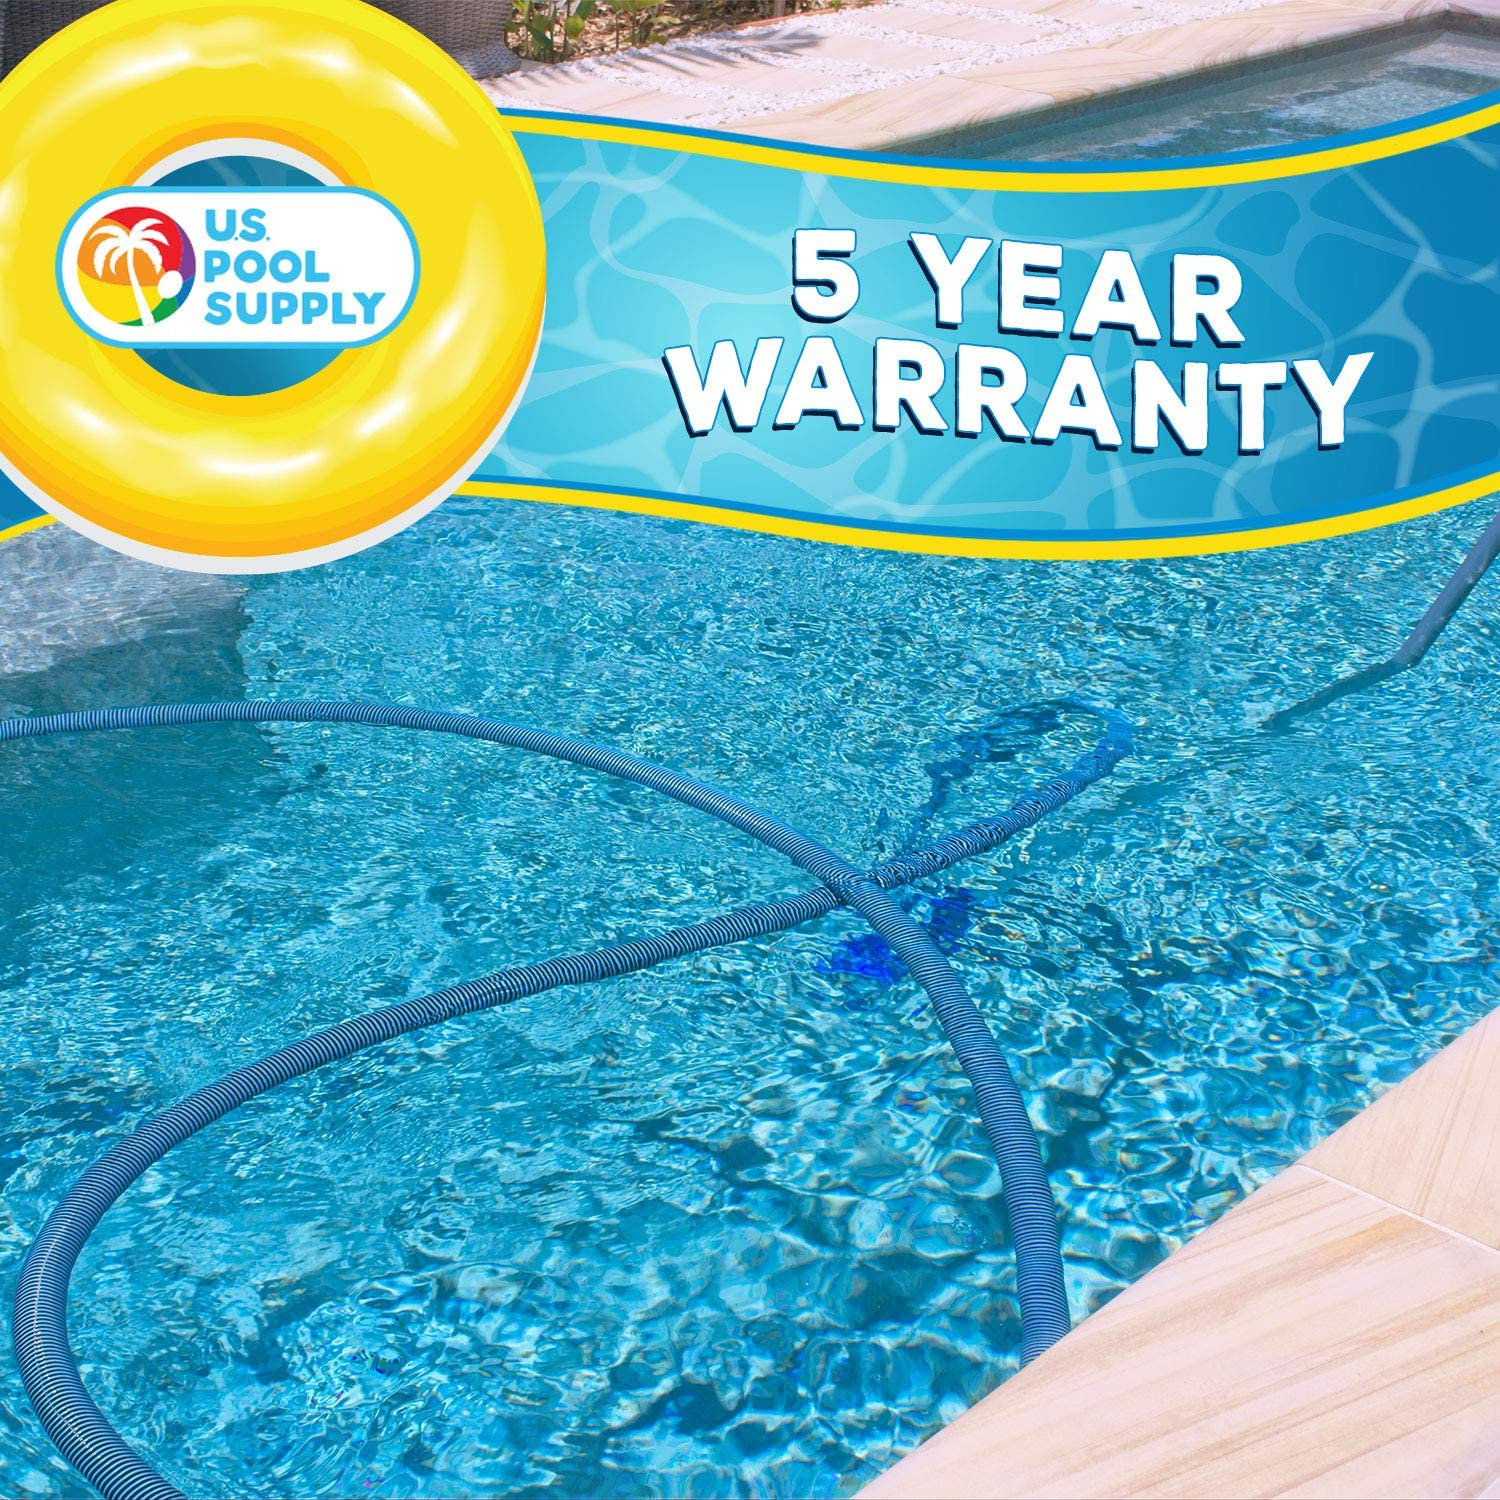 """U.S. Pool Supply 1-1/2"""" x 36 Foot Professional Heavy Duty Spiral Wound Swimming Pool Vacuum Hose with Swivel Cuff : Garden & Outdoor"""